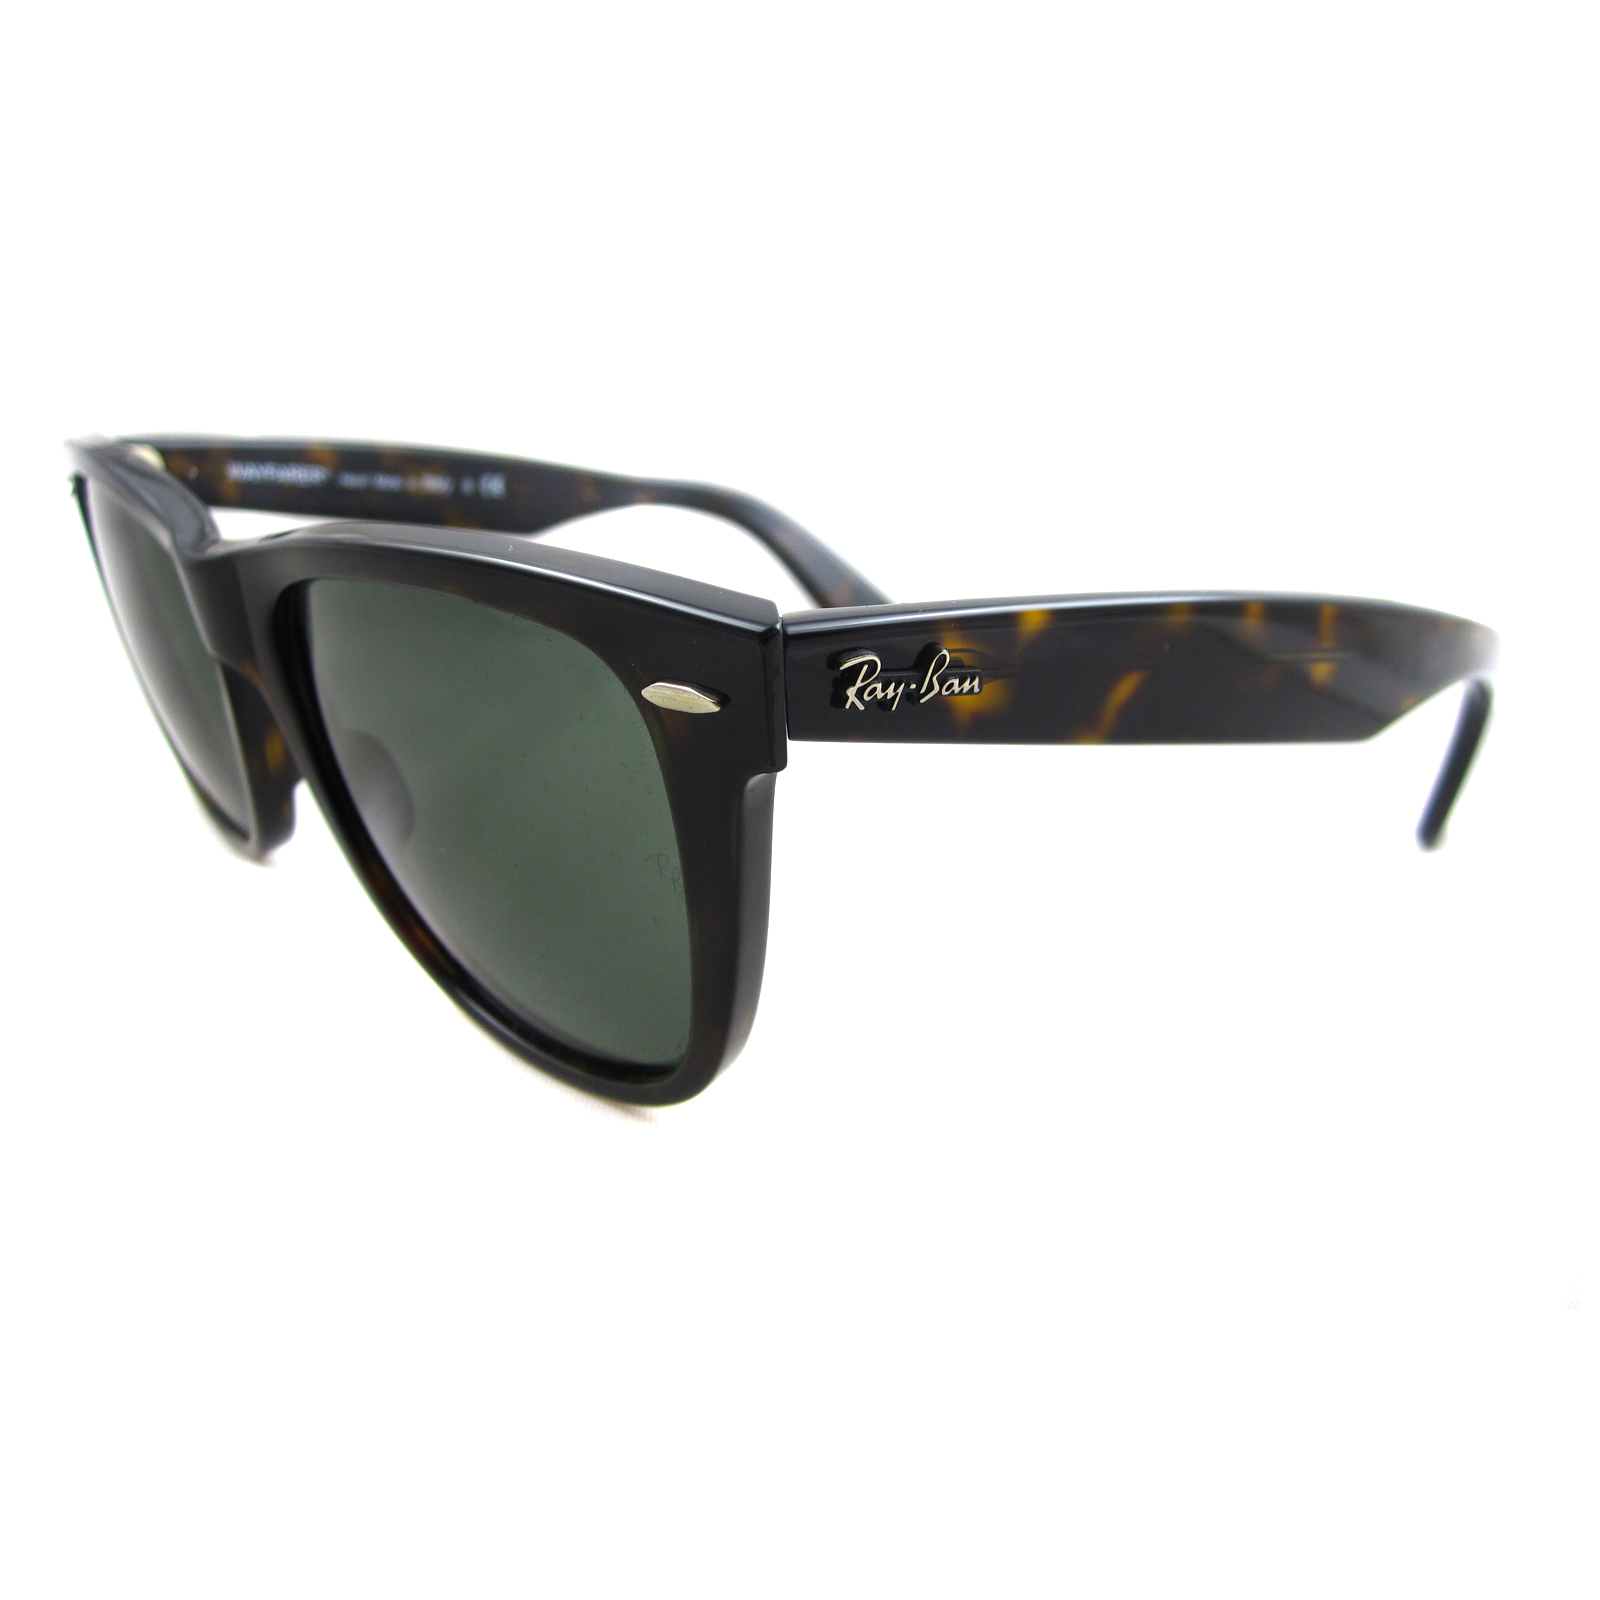 c459d8231 Details about Ray-Ban Sunglasses Wayfarer 2140 902 Tortoise Green G-15  Large 54mm